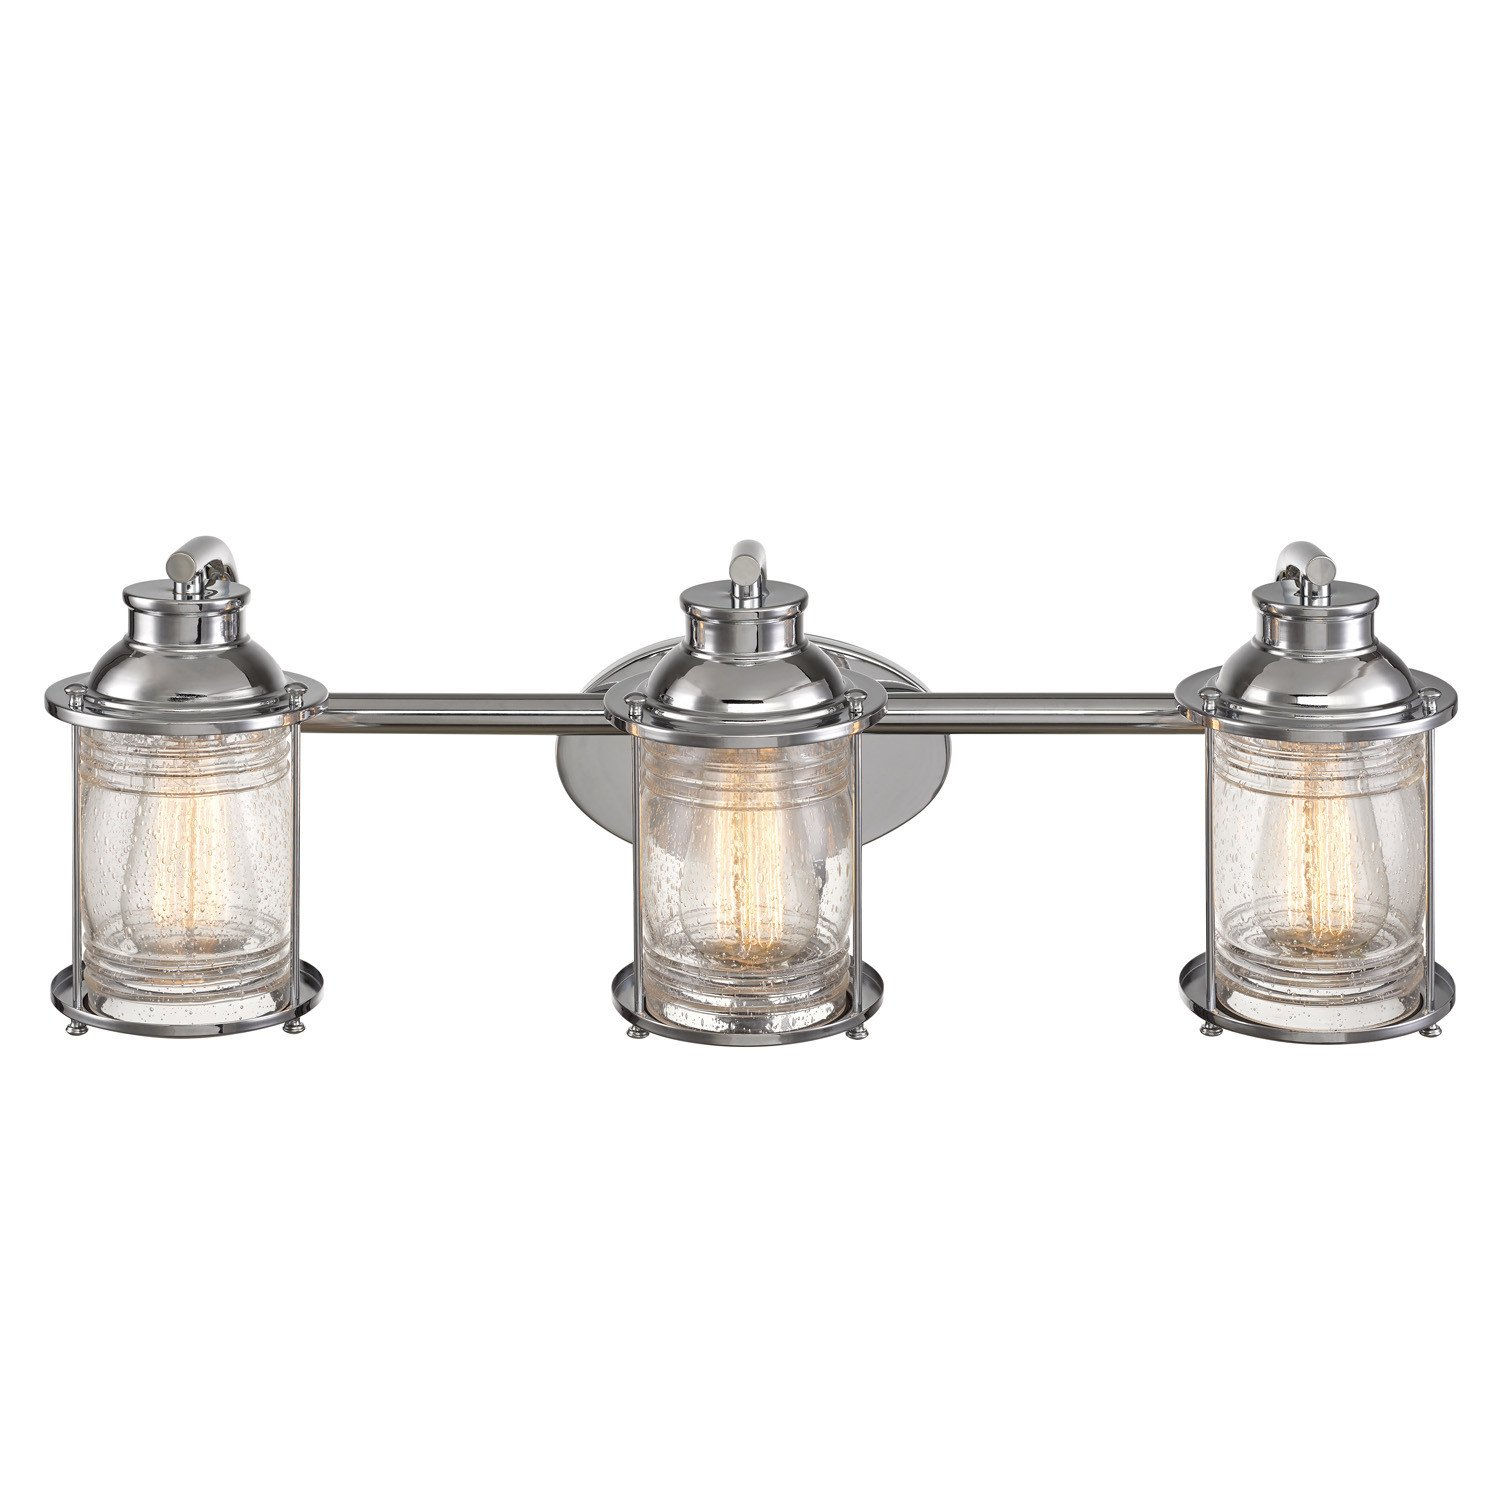 Globe Electric 51272 Bayfield 3 Vanity Light Finish, Ribbed Seeded Glass Shades, Chrome